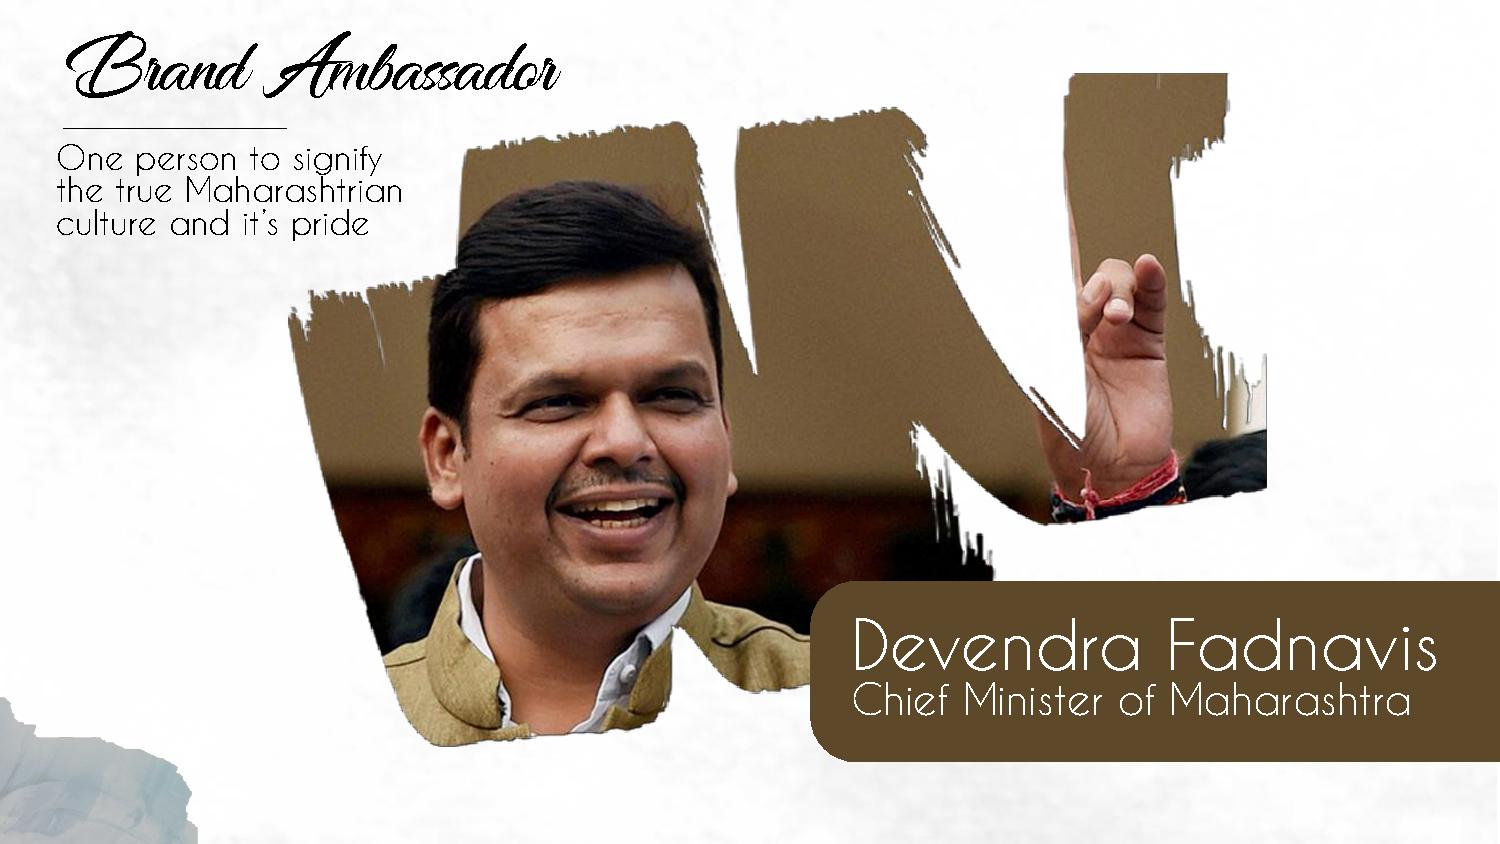 Brand Ambassador One person to signify the true Maharashtrian culture and it's pride Devendra Fadnavis Chief Minister of Maharashtra